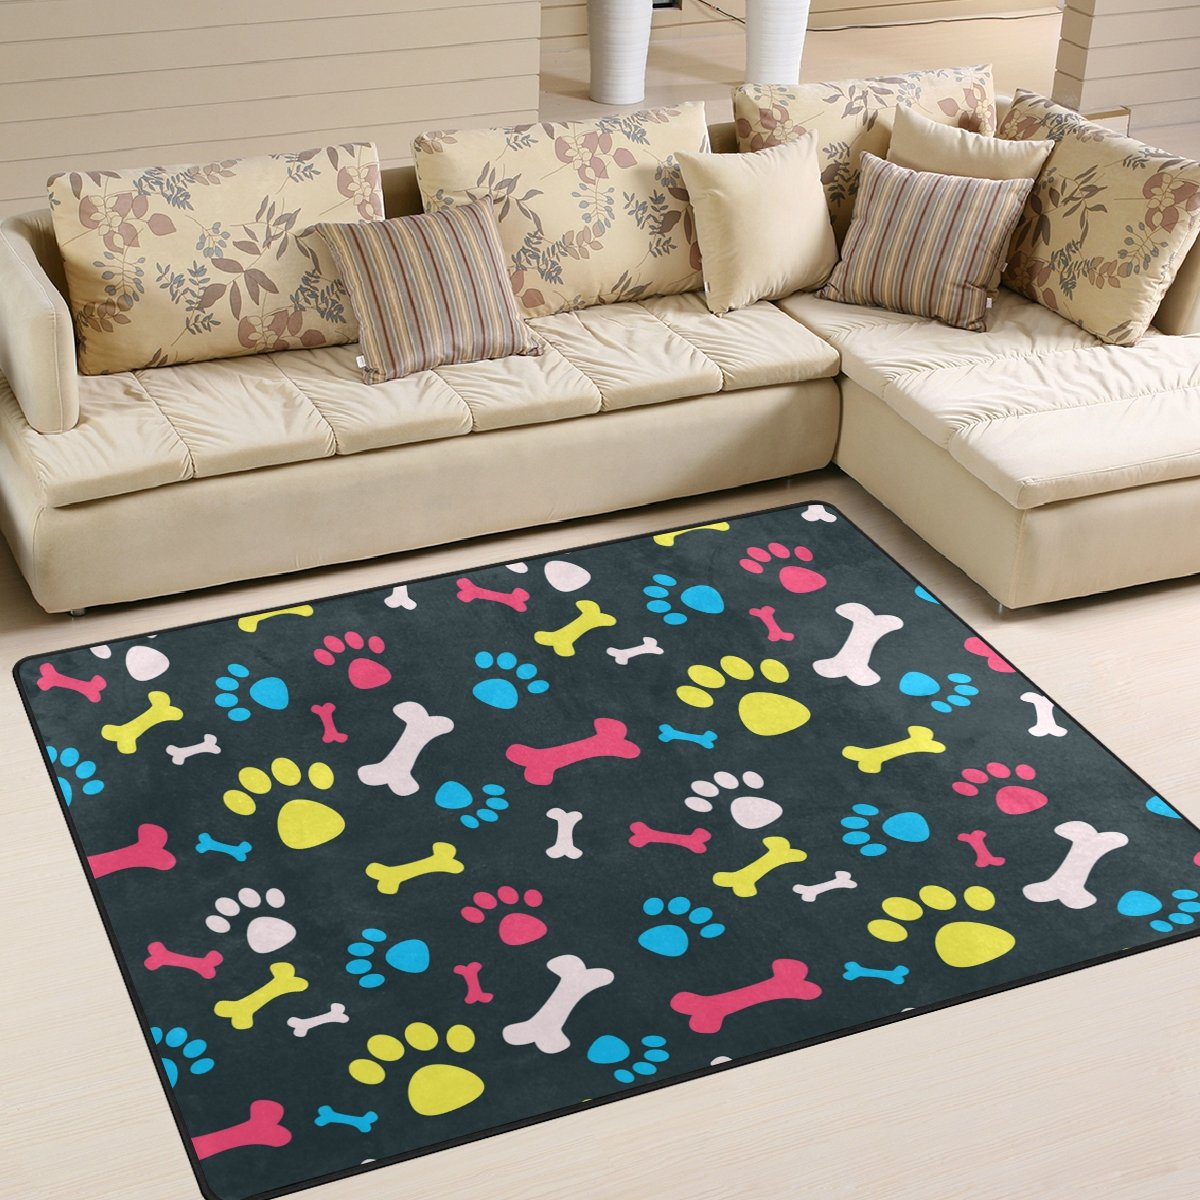 ALAZA Colorful Dog Pawprint Kids Area Rug,Pet Pawprint Non-Slip Floor Mat Soft Resting Area Doormats for Living Dining Bedroom 5' x 7'